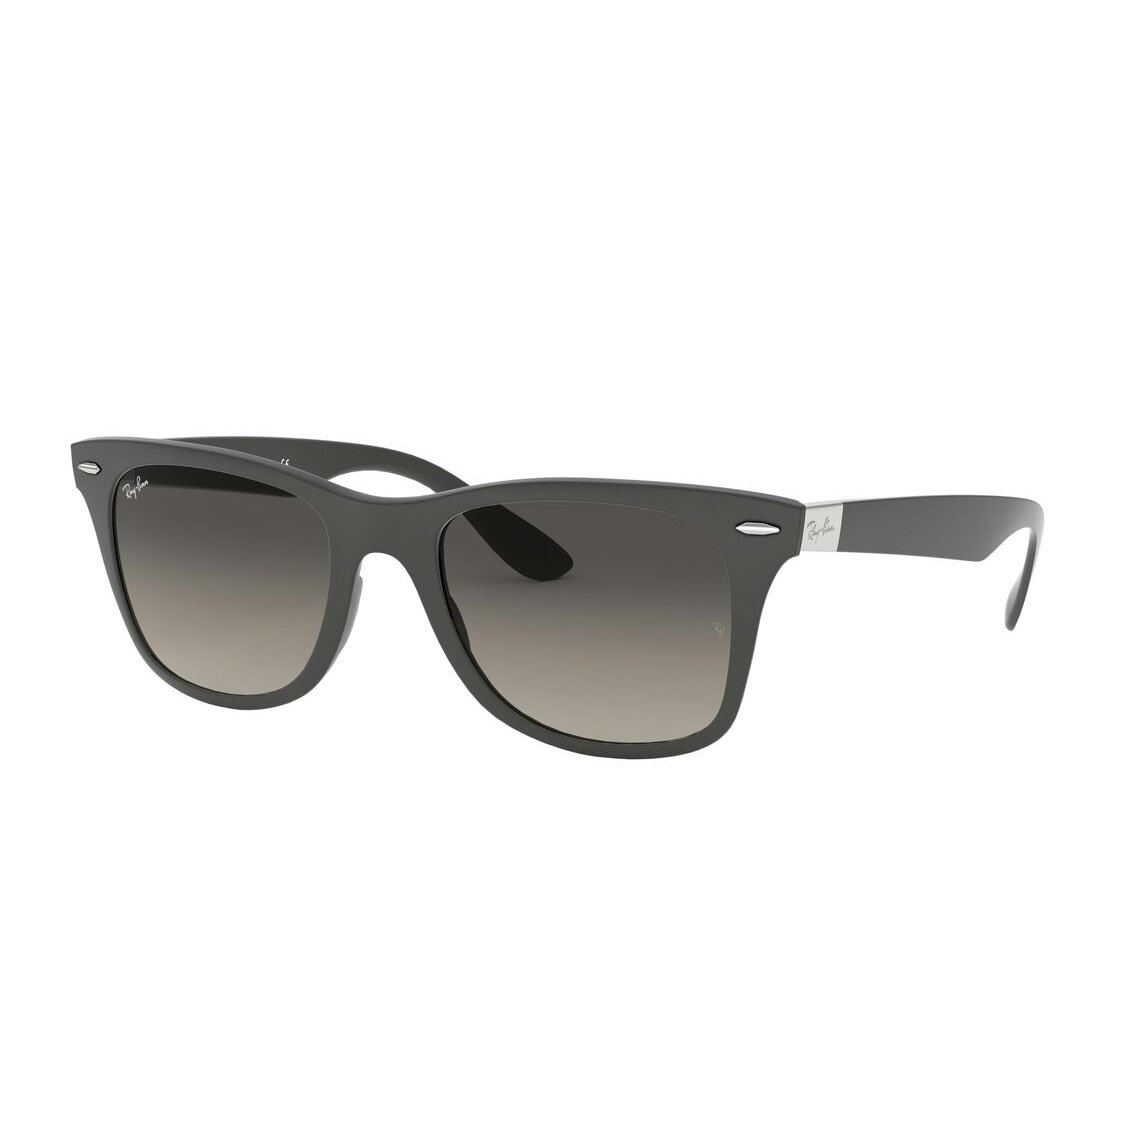 Ray-Ban Wayfarer Liteforce RB4195 633211 52